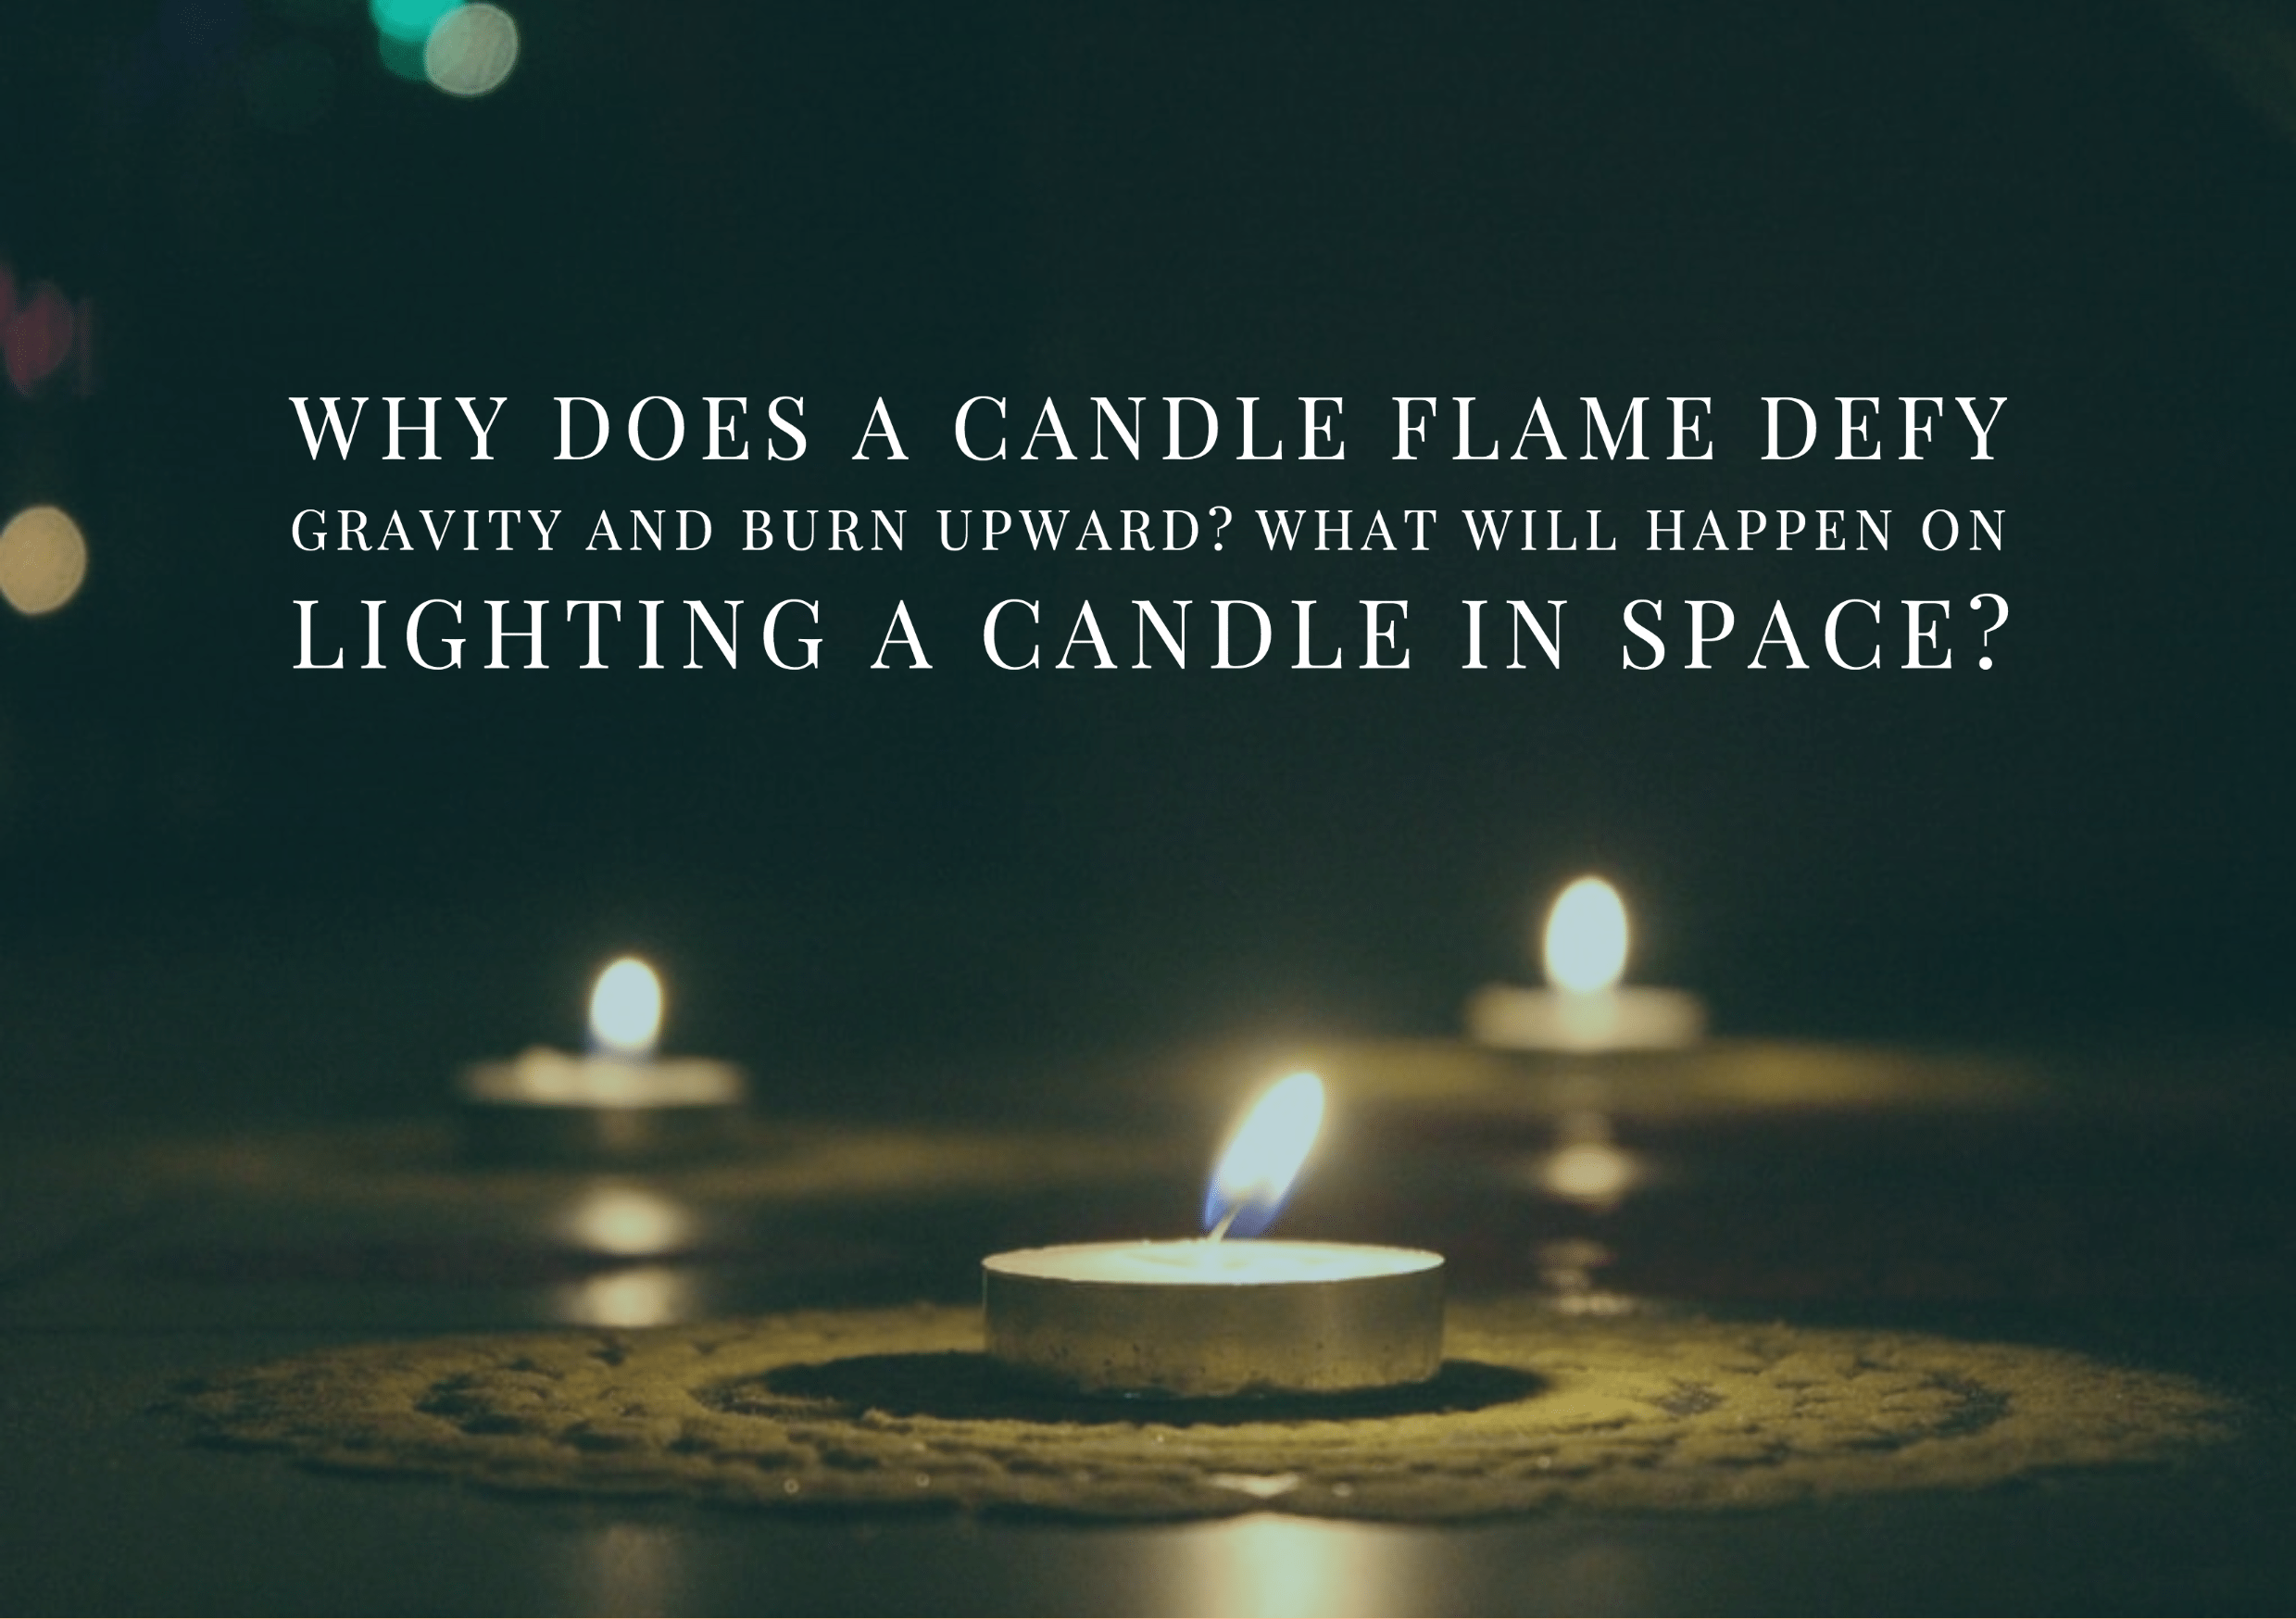 Why does a candle flame defy gravity and burn upward What will happen on lighting a candle in space